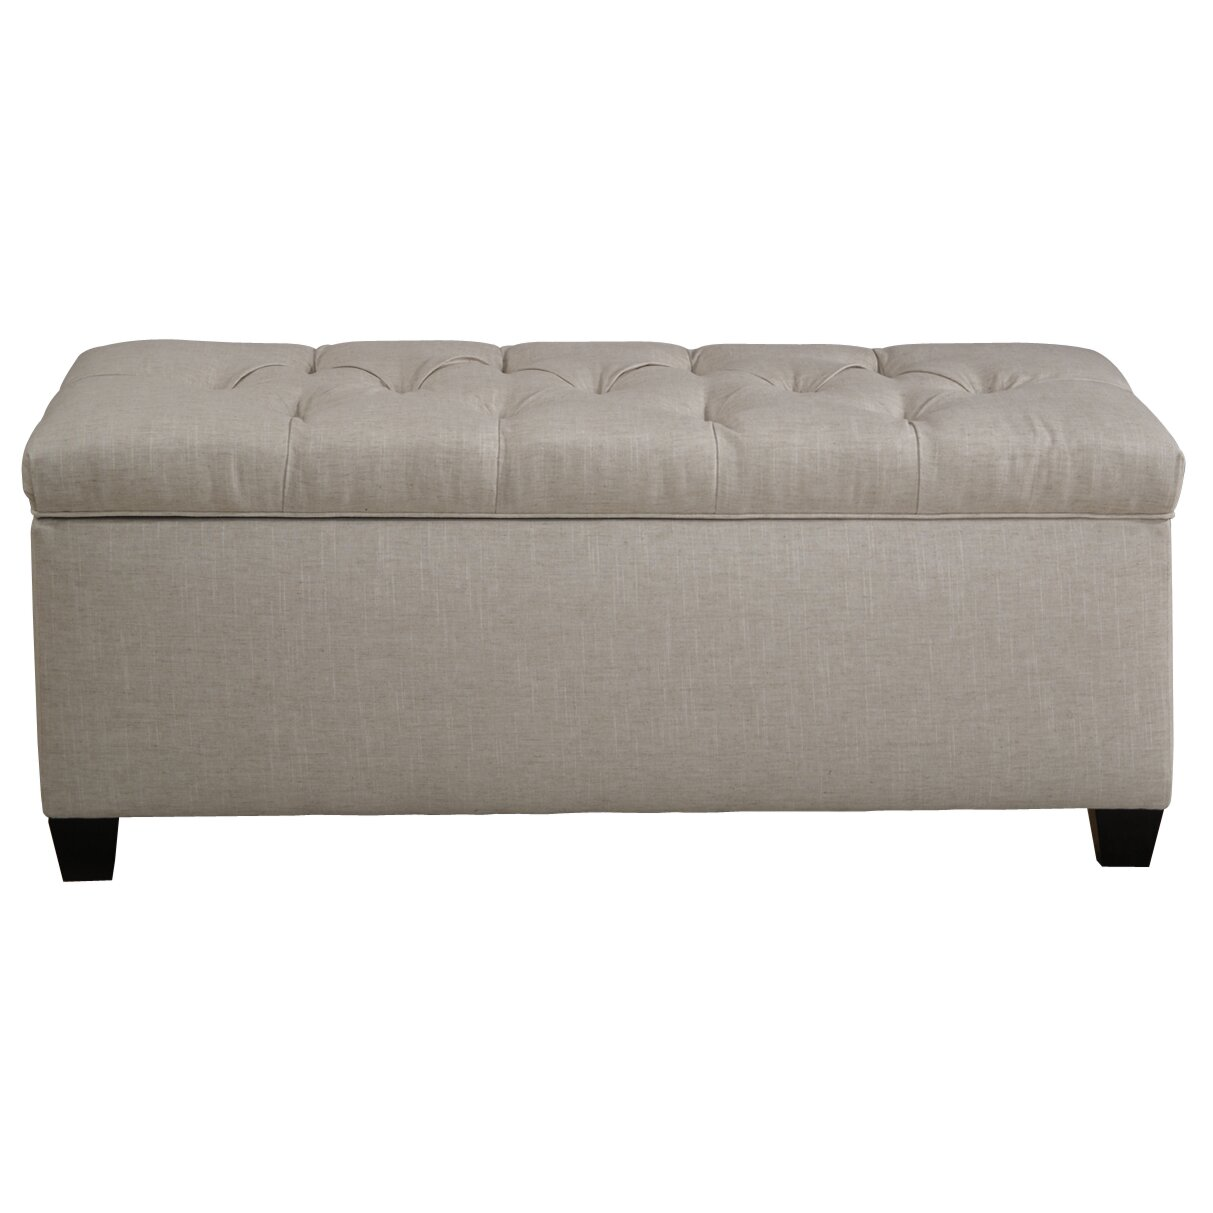 The Sole Secret Upholstered Storage Bedroom Bench Reviews Wayfair